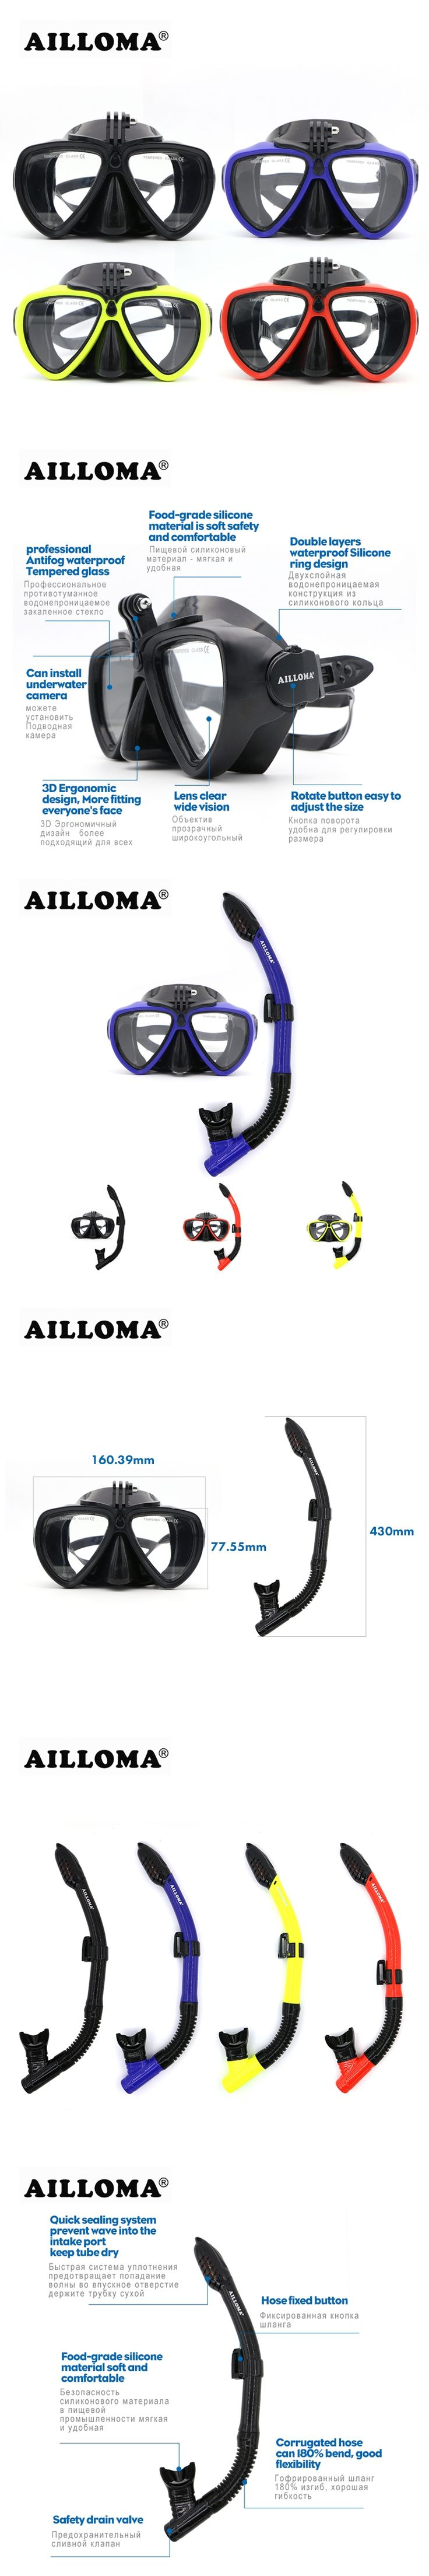 AILLOMA Camera Scuba Diving Mask Snorkel Set Silicone Equipment with Full Dry Snorkel Swimming Snorkeling Anti-Fog Goggles